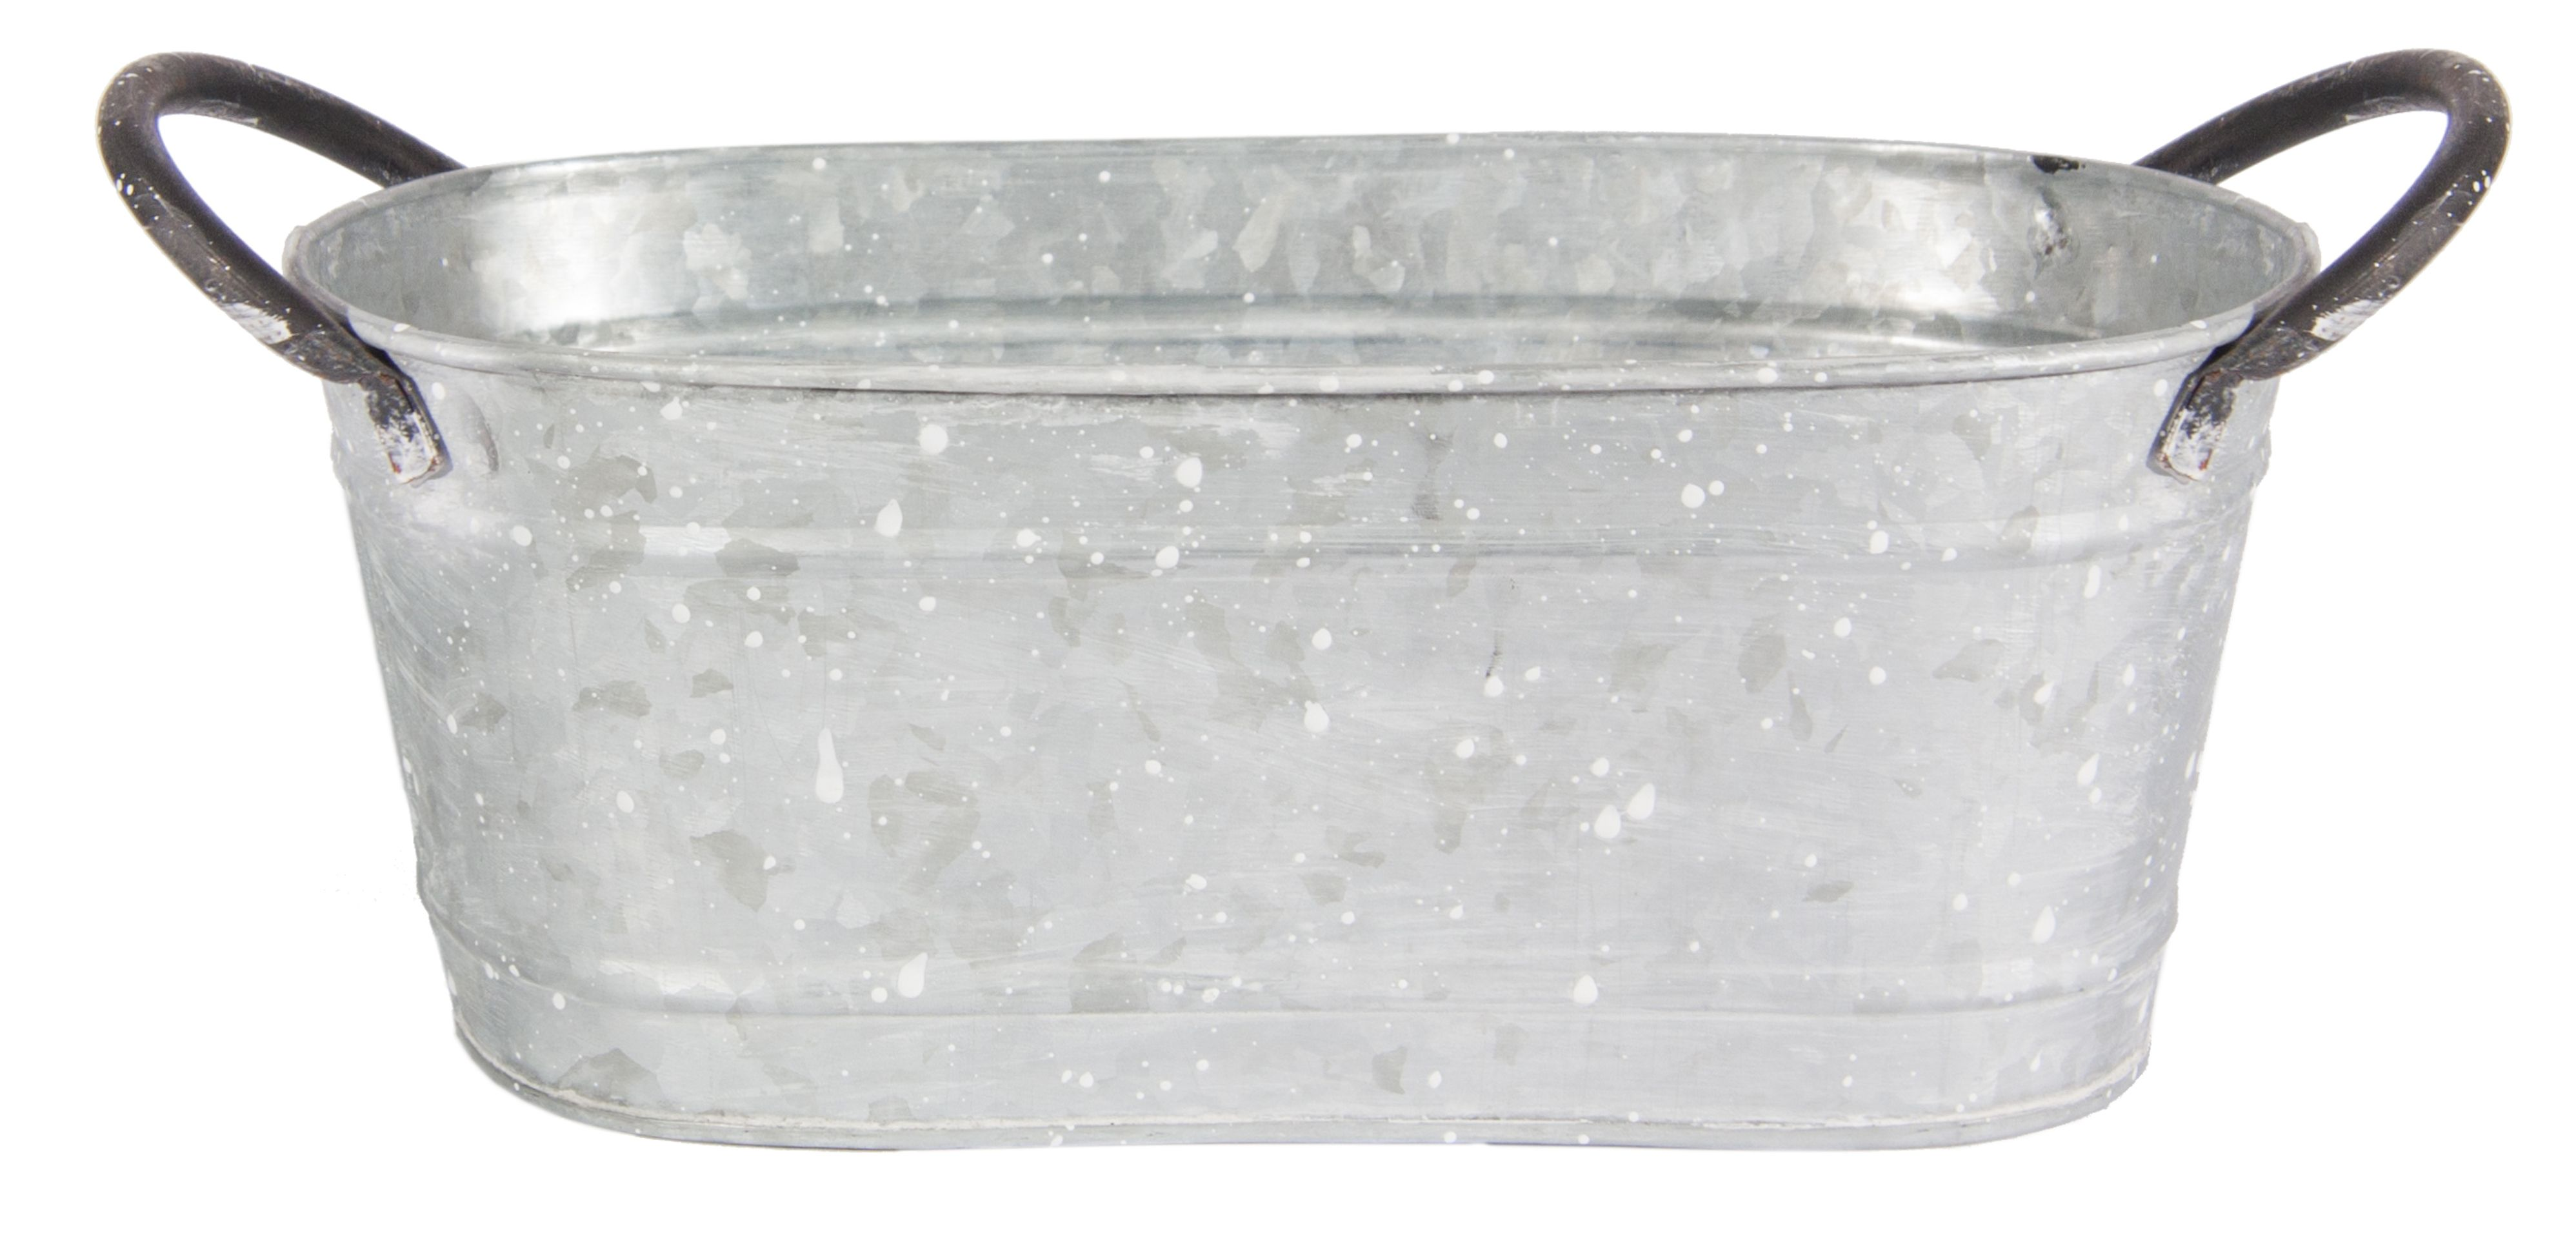 Canfloyd, Garden Expressions - Farmer's Market. E00523 - Large oval gray planter. MSRP $17.50